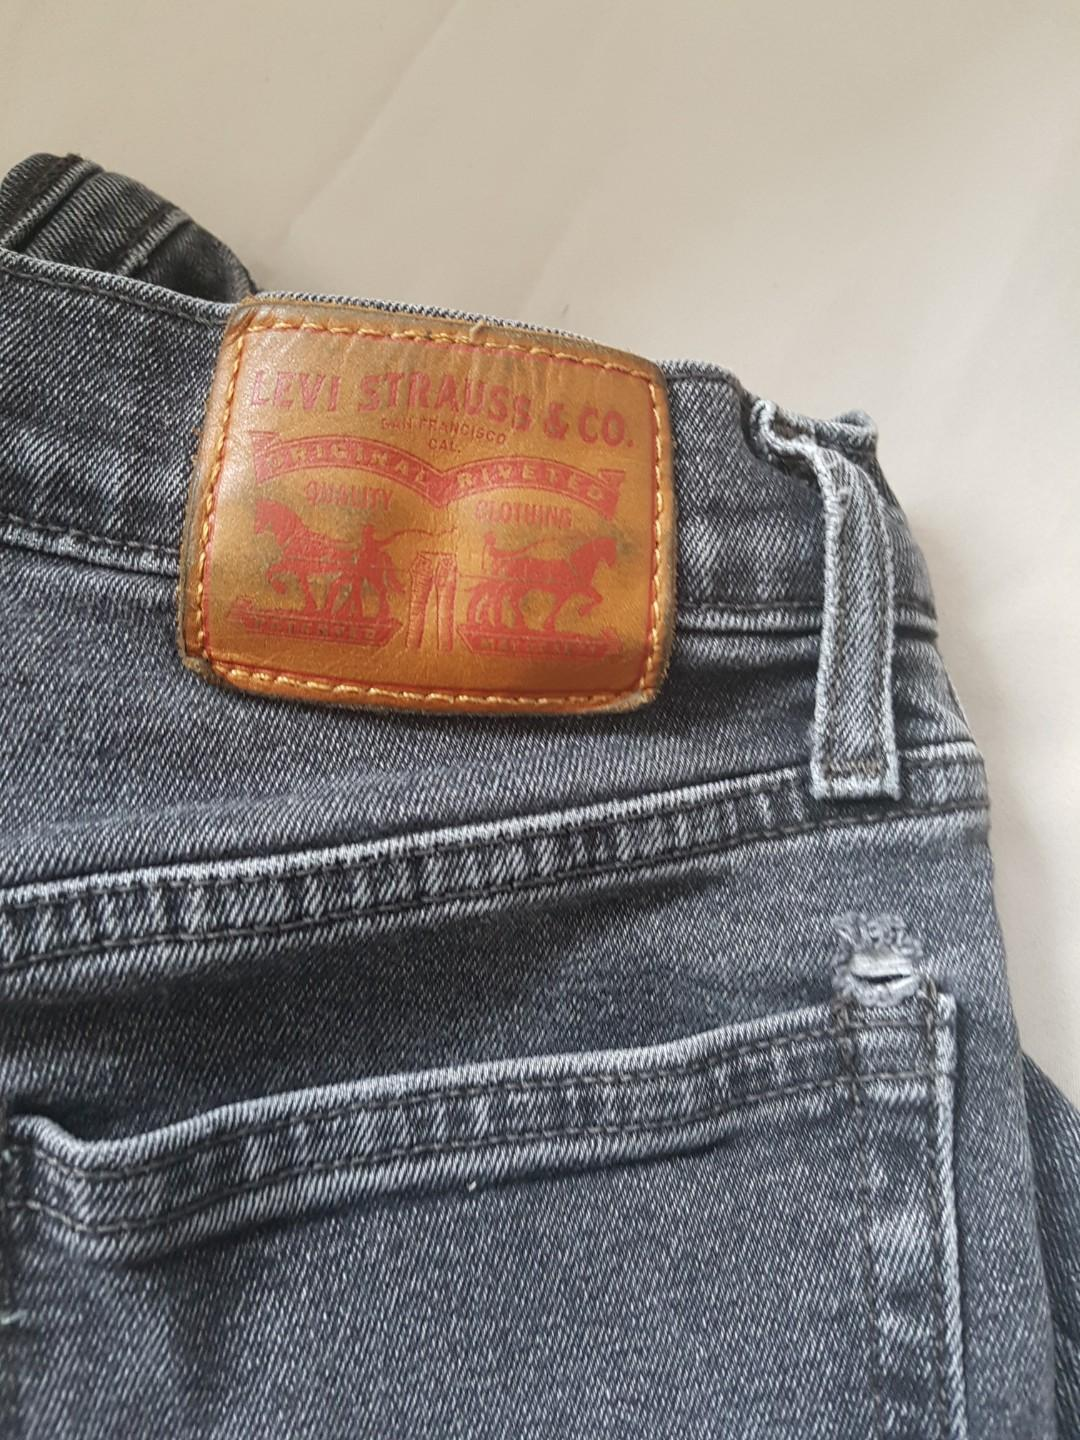 levi's high-waisted black wedgie jeans